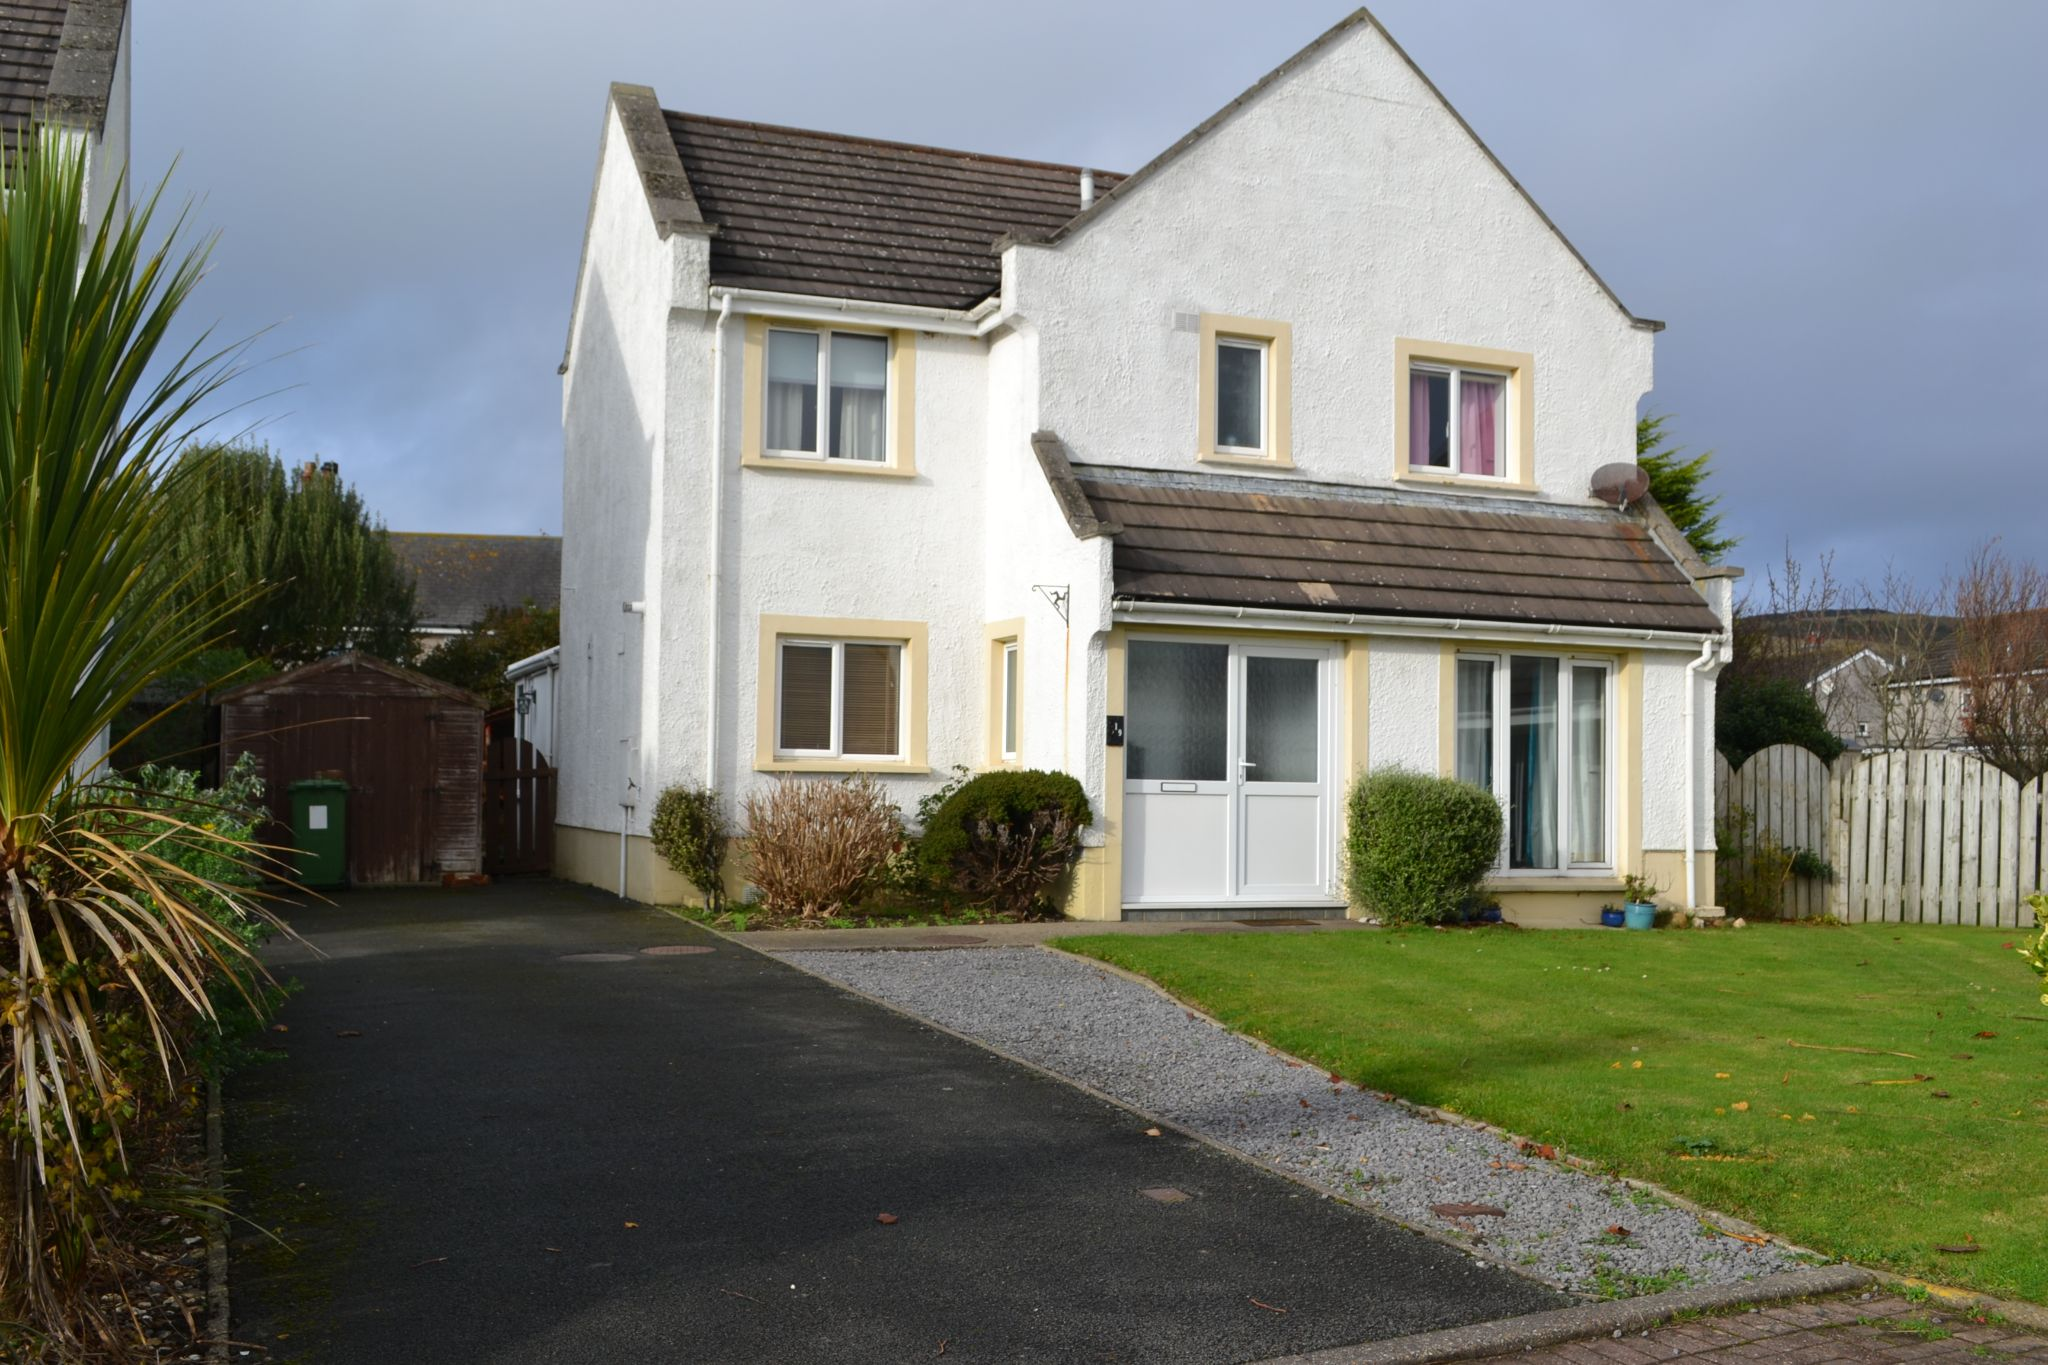 3 bedroom detached house SSTC in Port Erin - Photograph 2